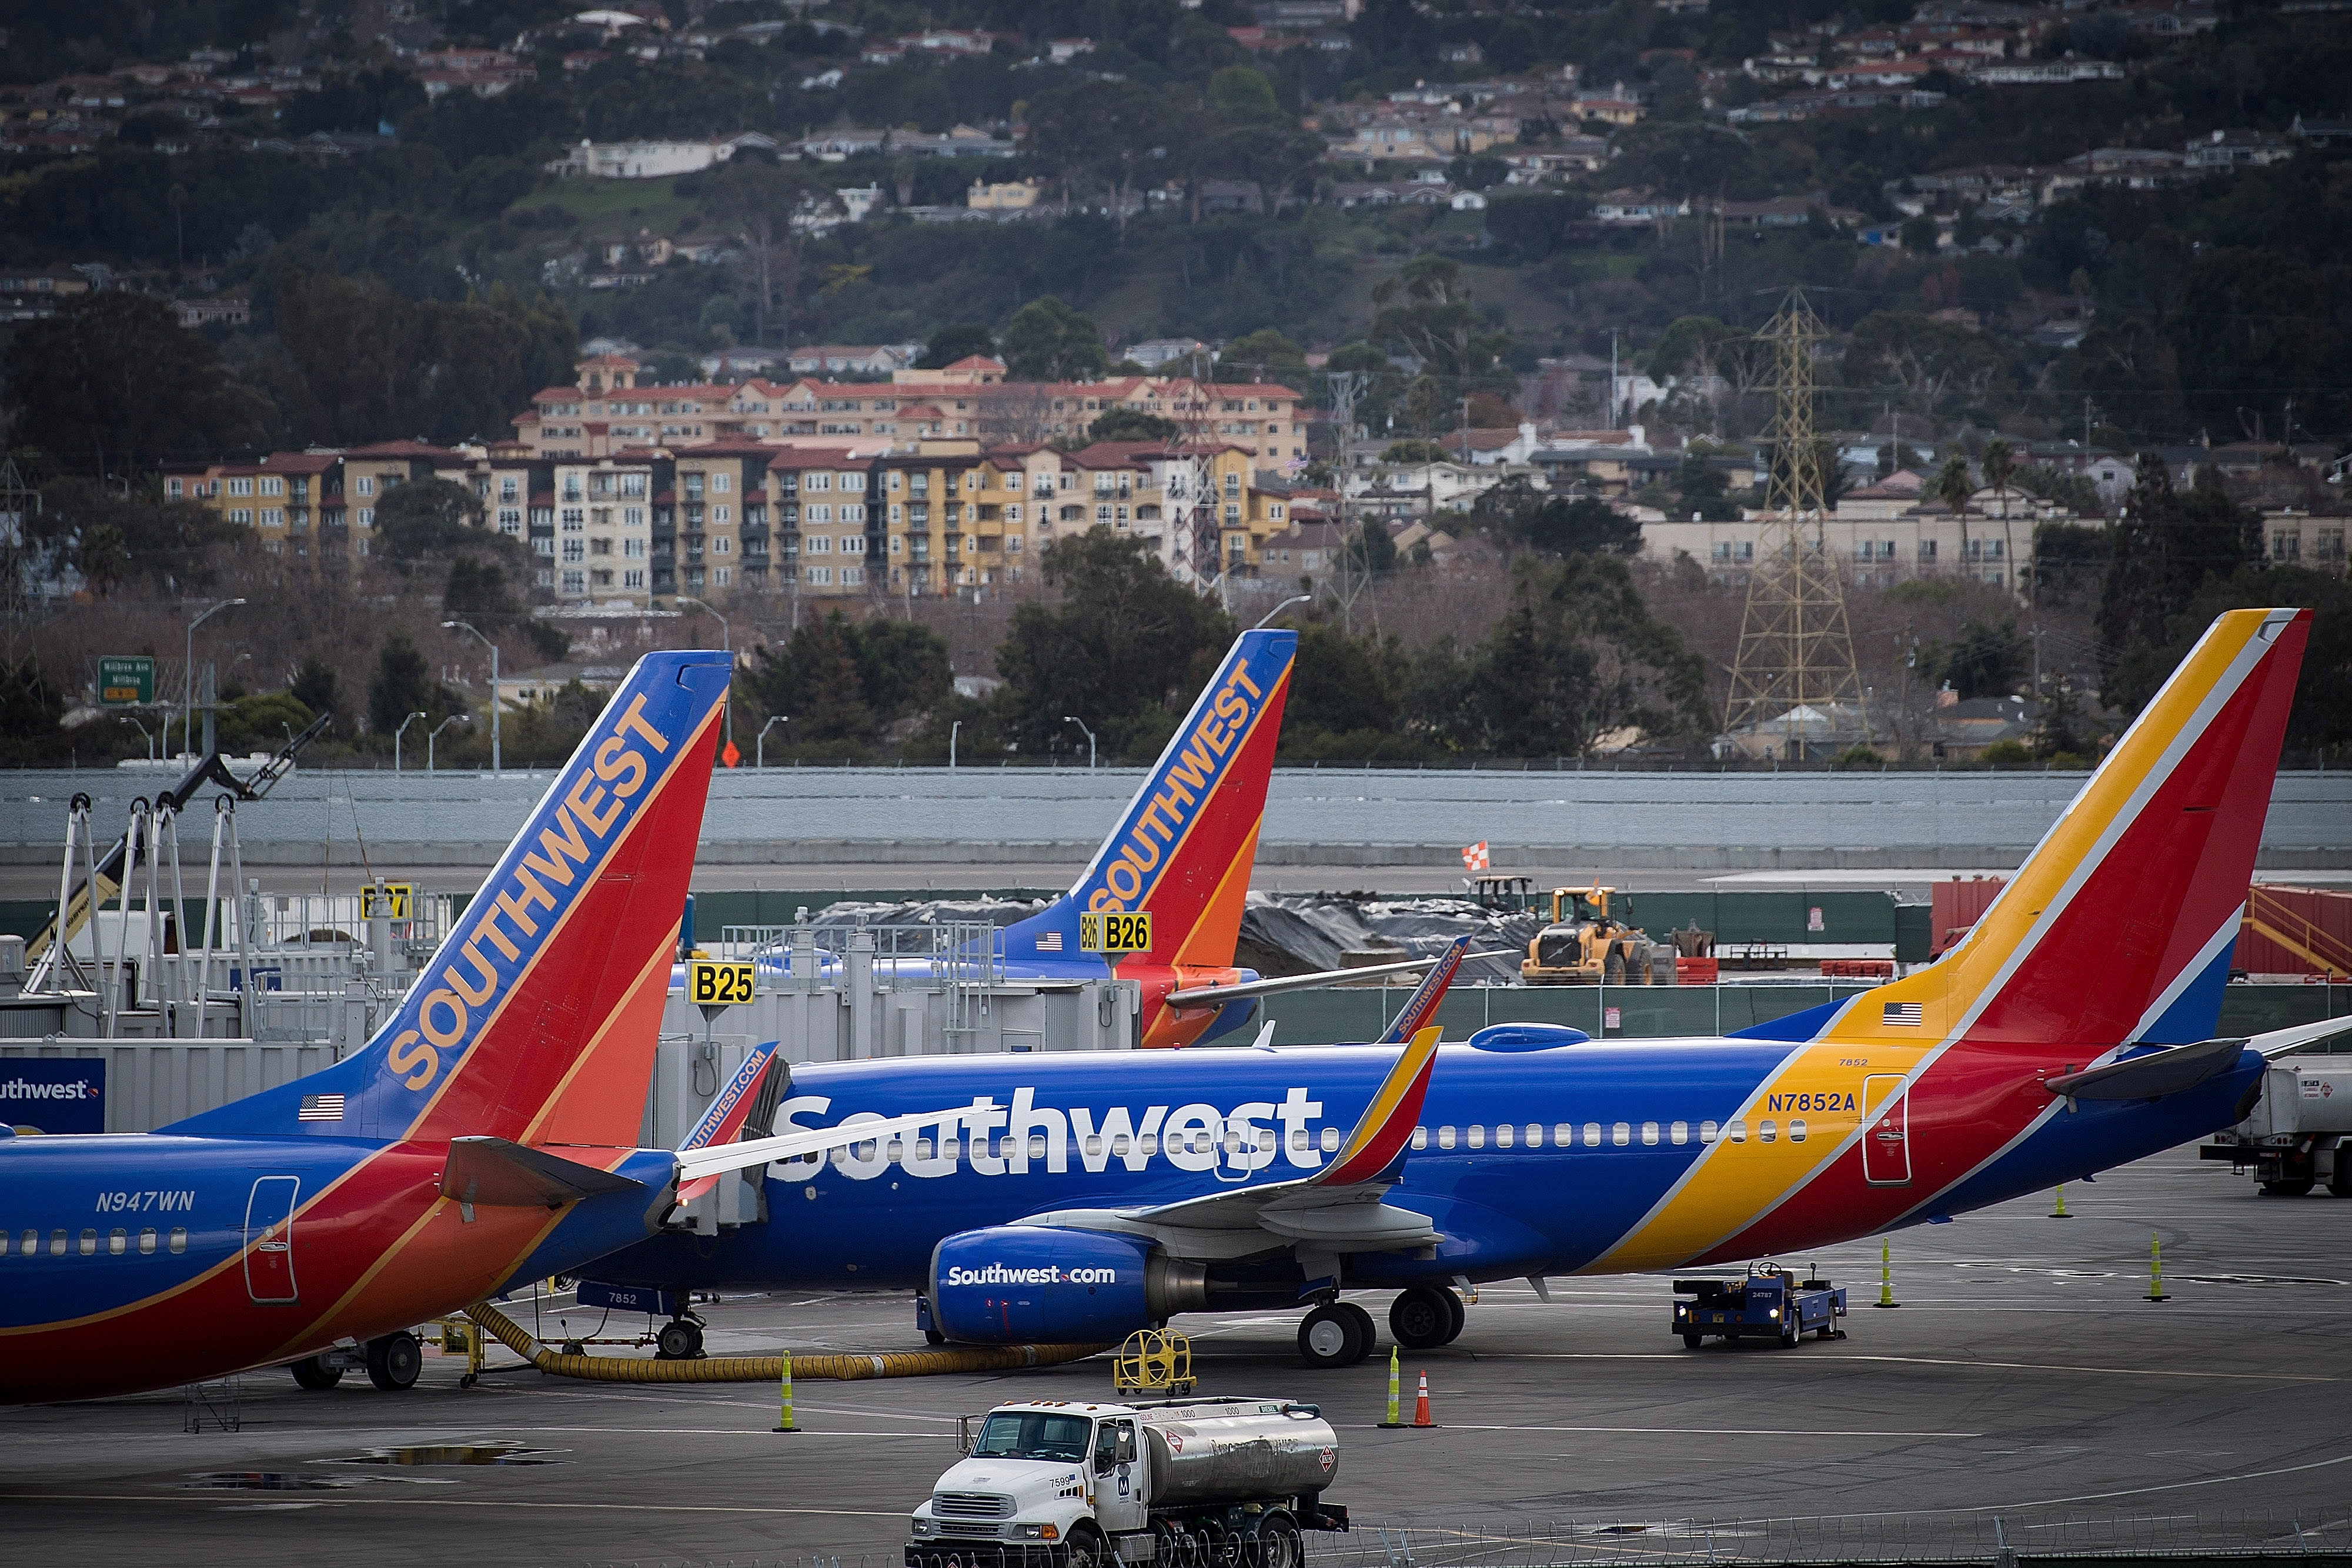 Southwest Airlines declares 'operational emergency' after number out-of-service aircraft doubles